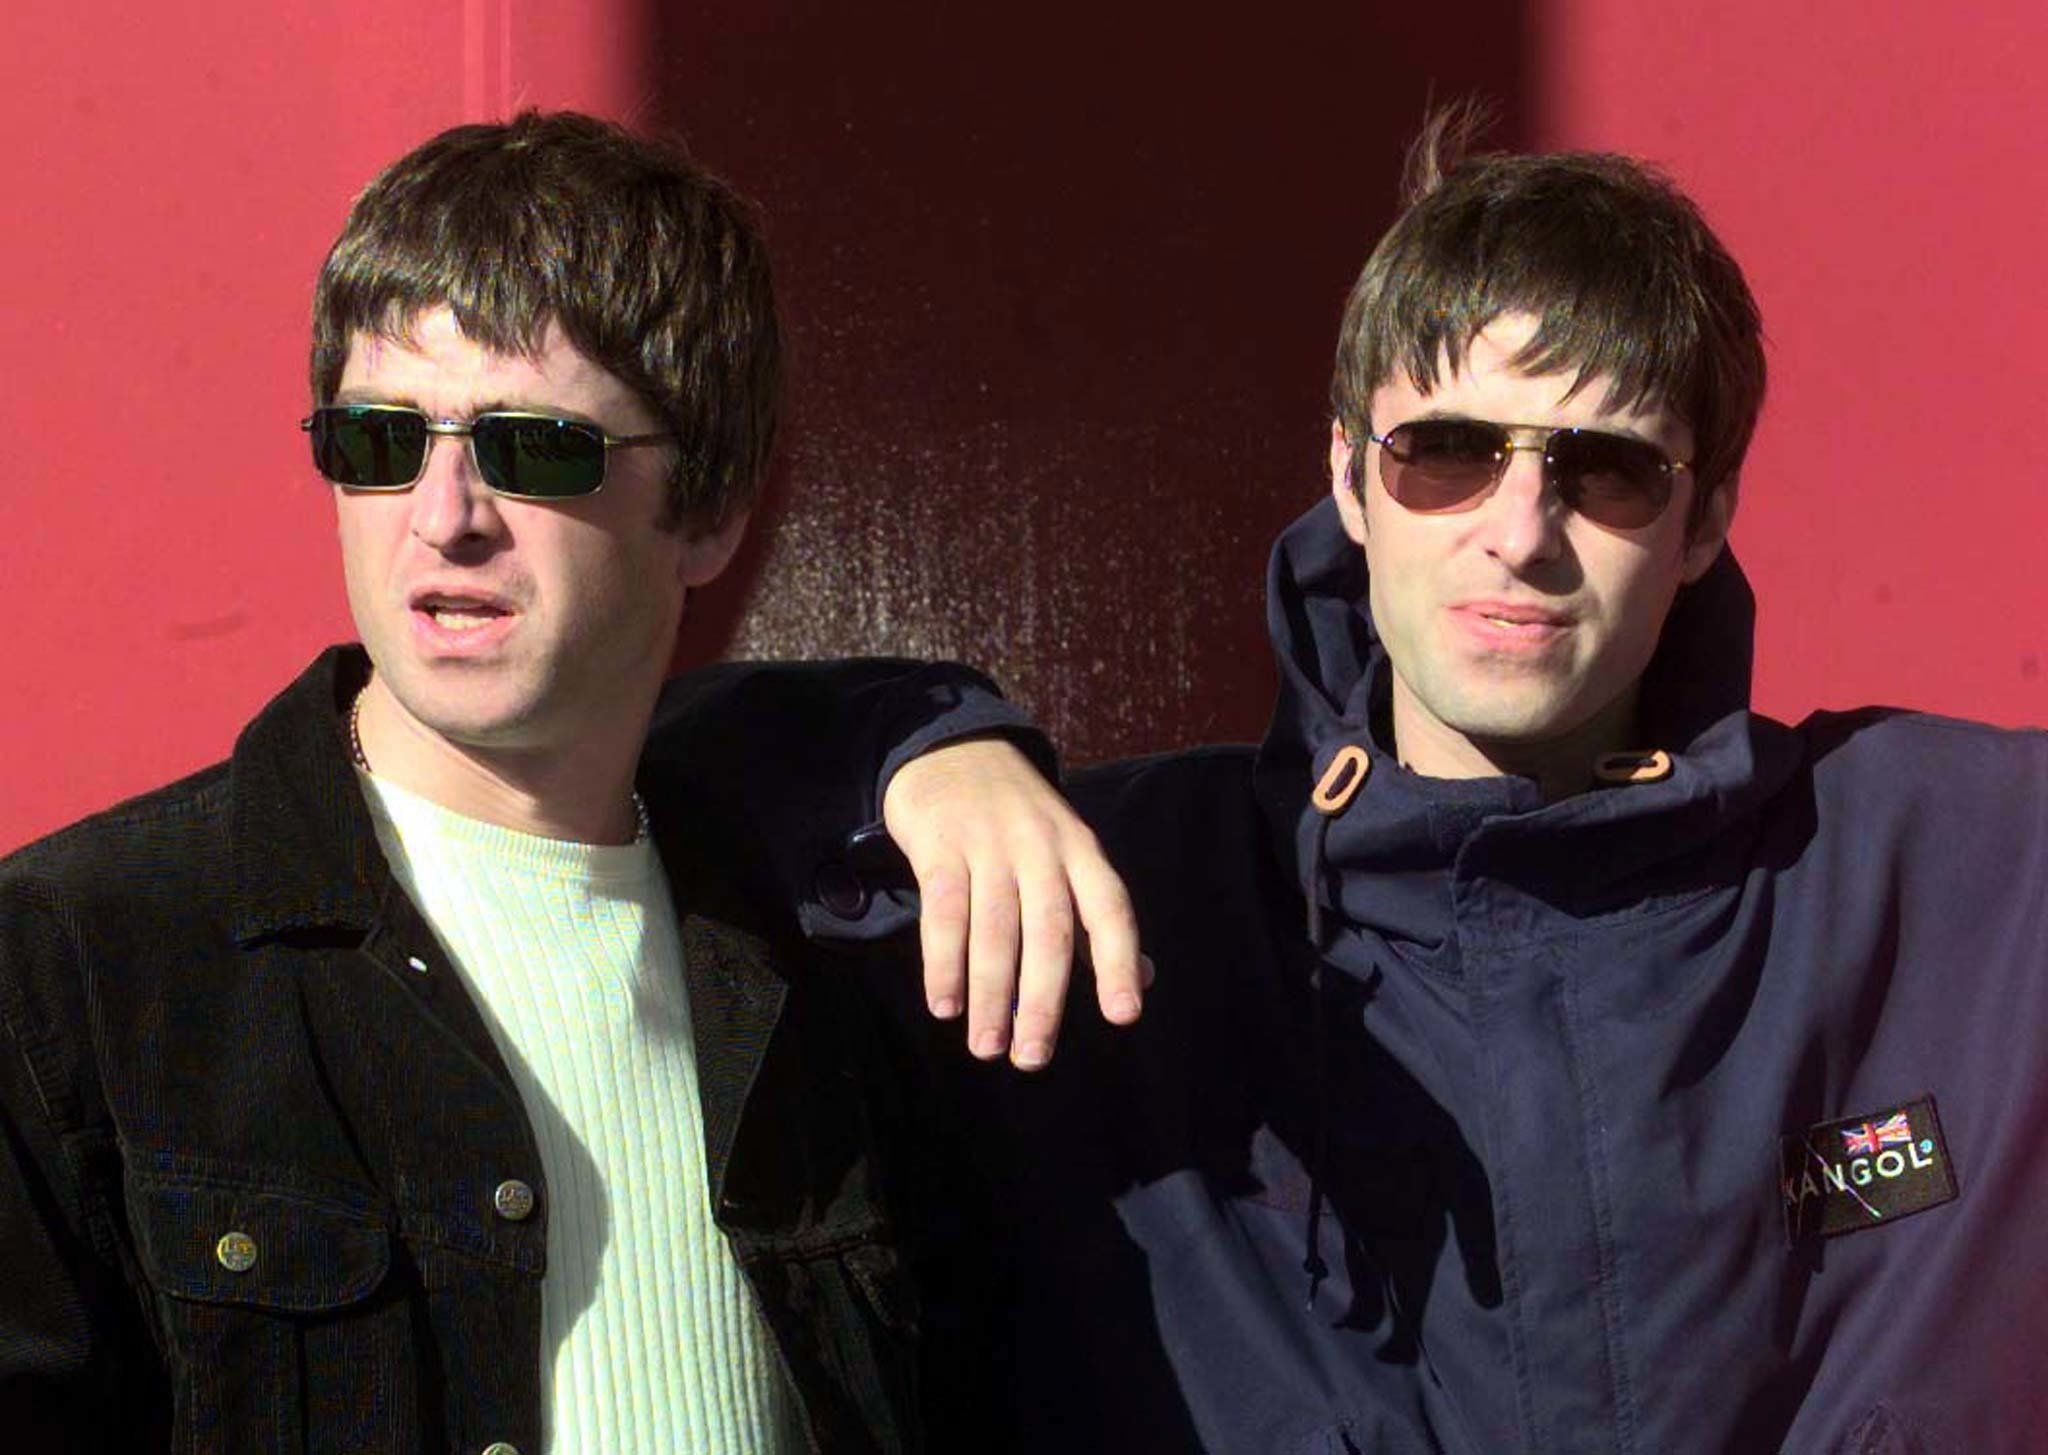 It Doesn't Look Like Liam And Noel Gallagher Will Be Making Up Any Time